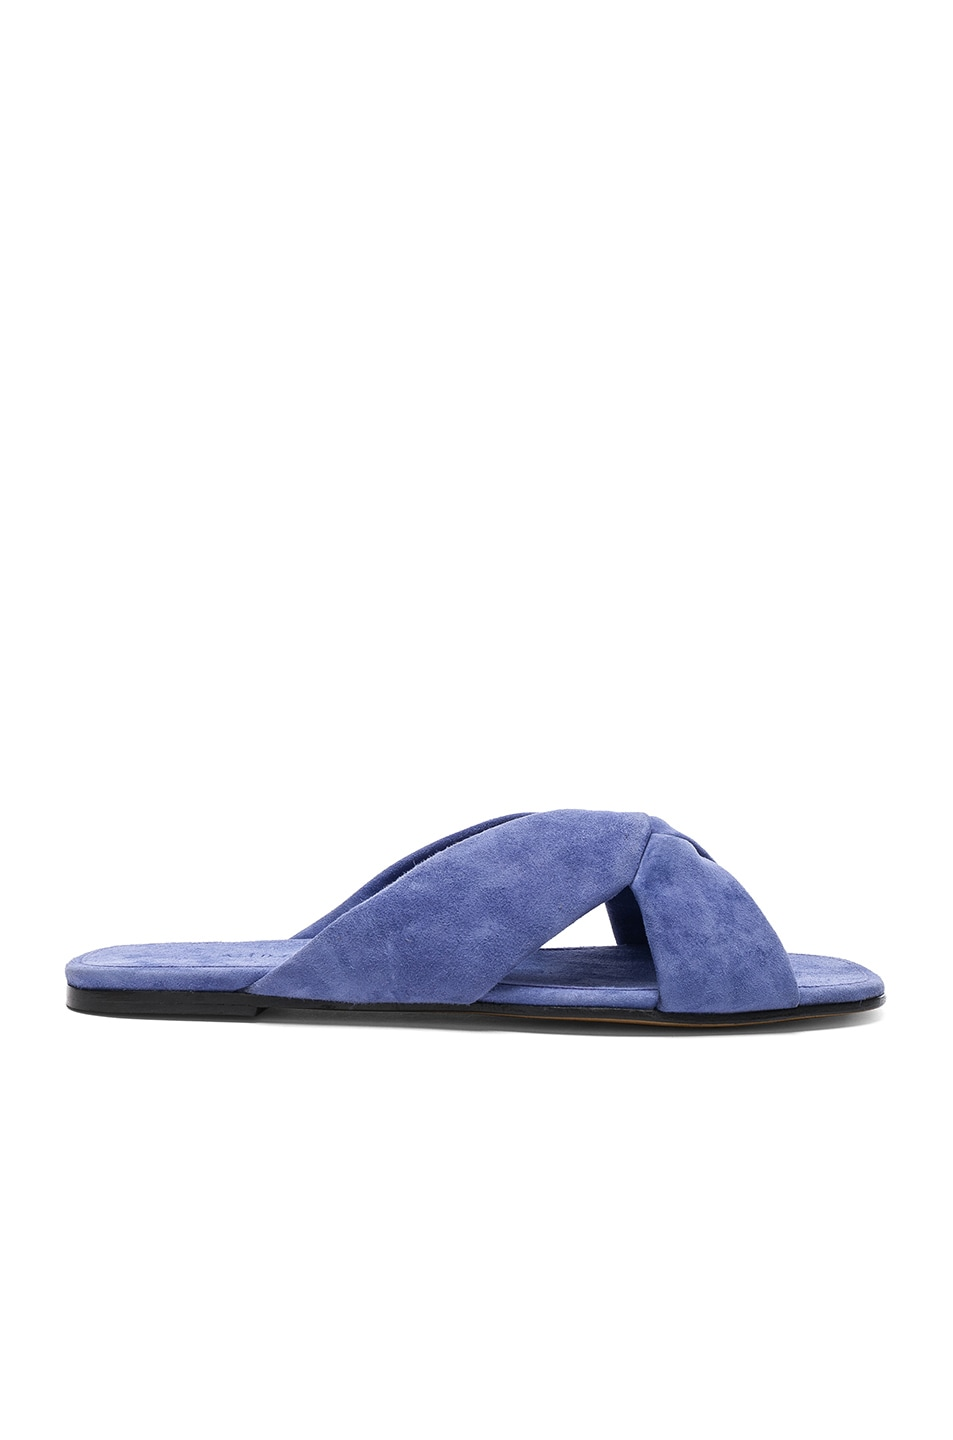 Image 1 of ALUMNAE Soft X Slide Sandals in Camoscio Dawn